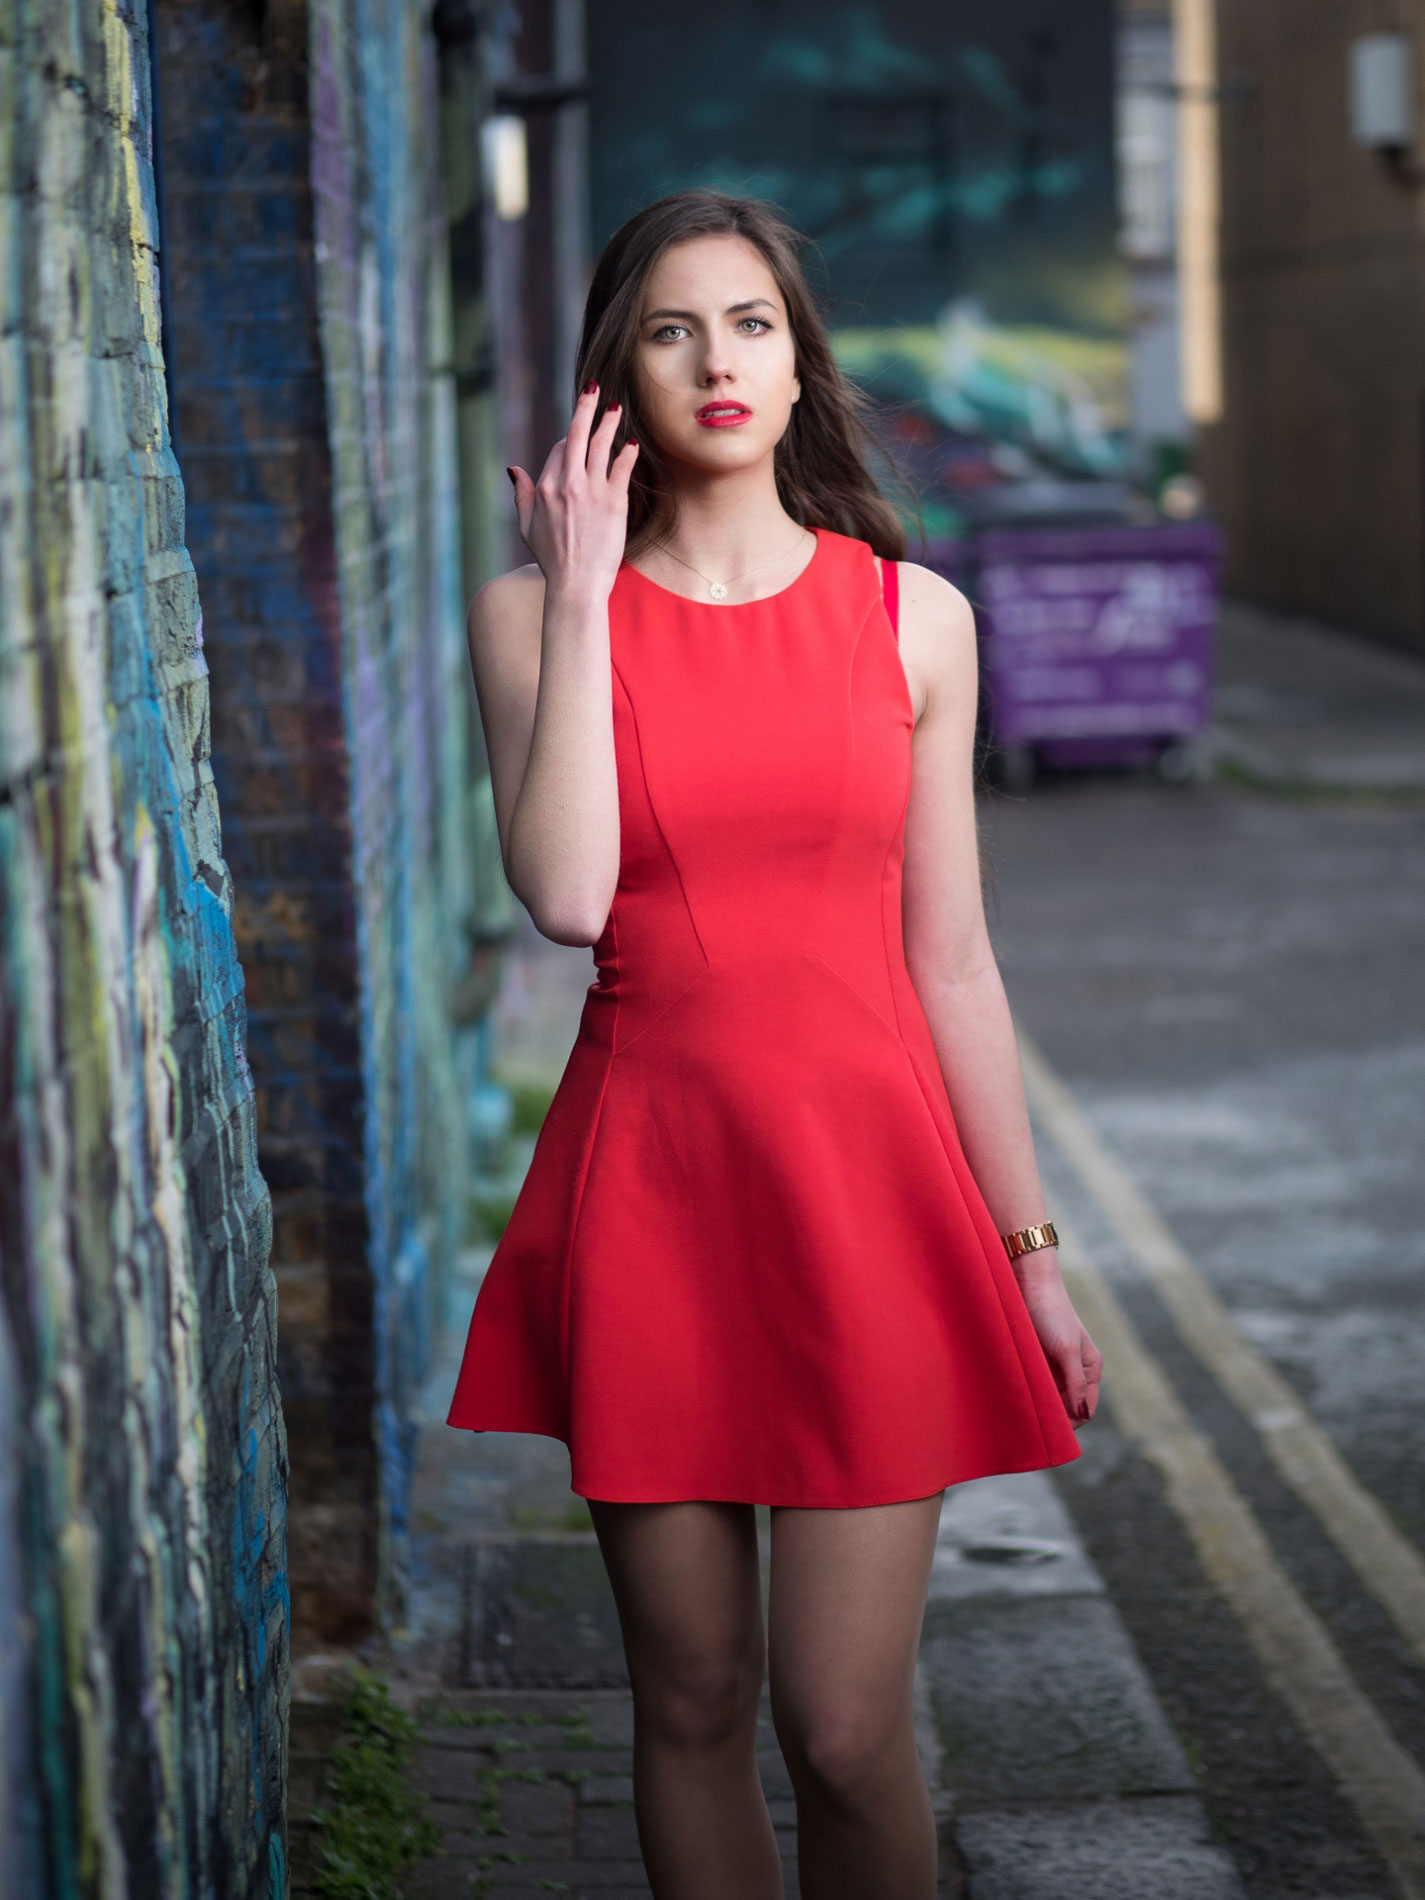 Russian-girl-in-red-dress